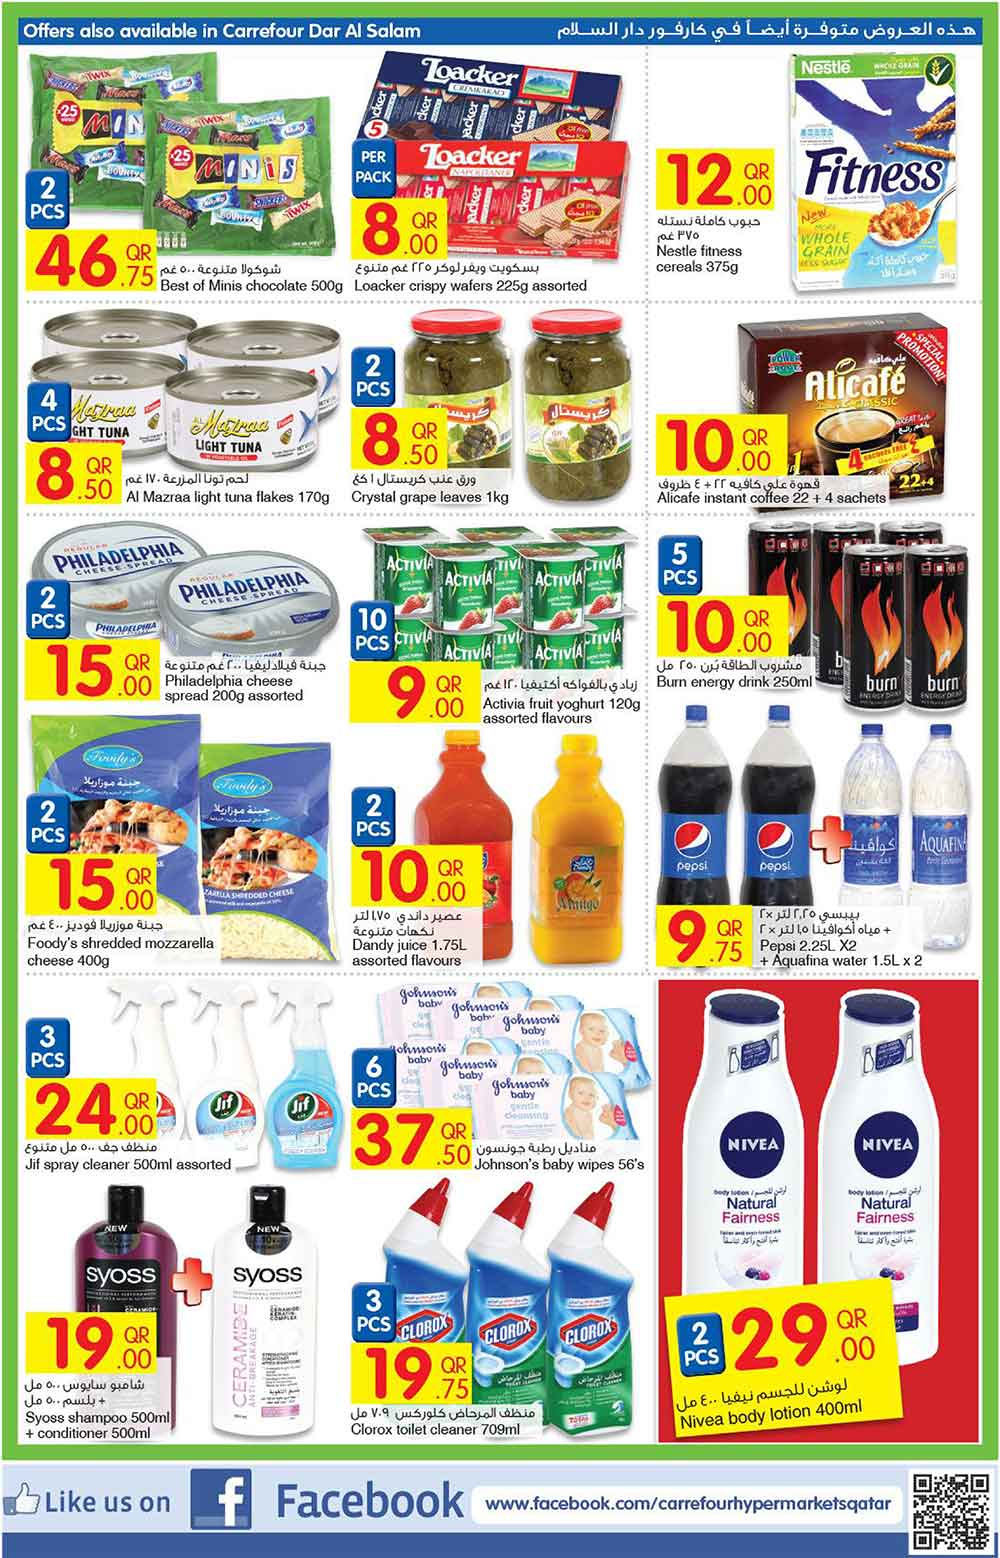 Carrefour intex stunning carrefour voyages with carrefour for Piscinas hinchables carrefour precios